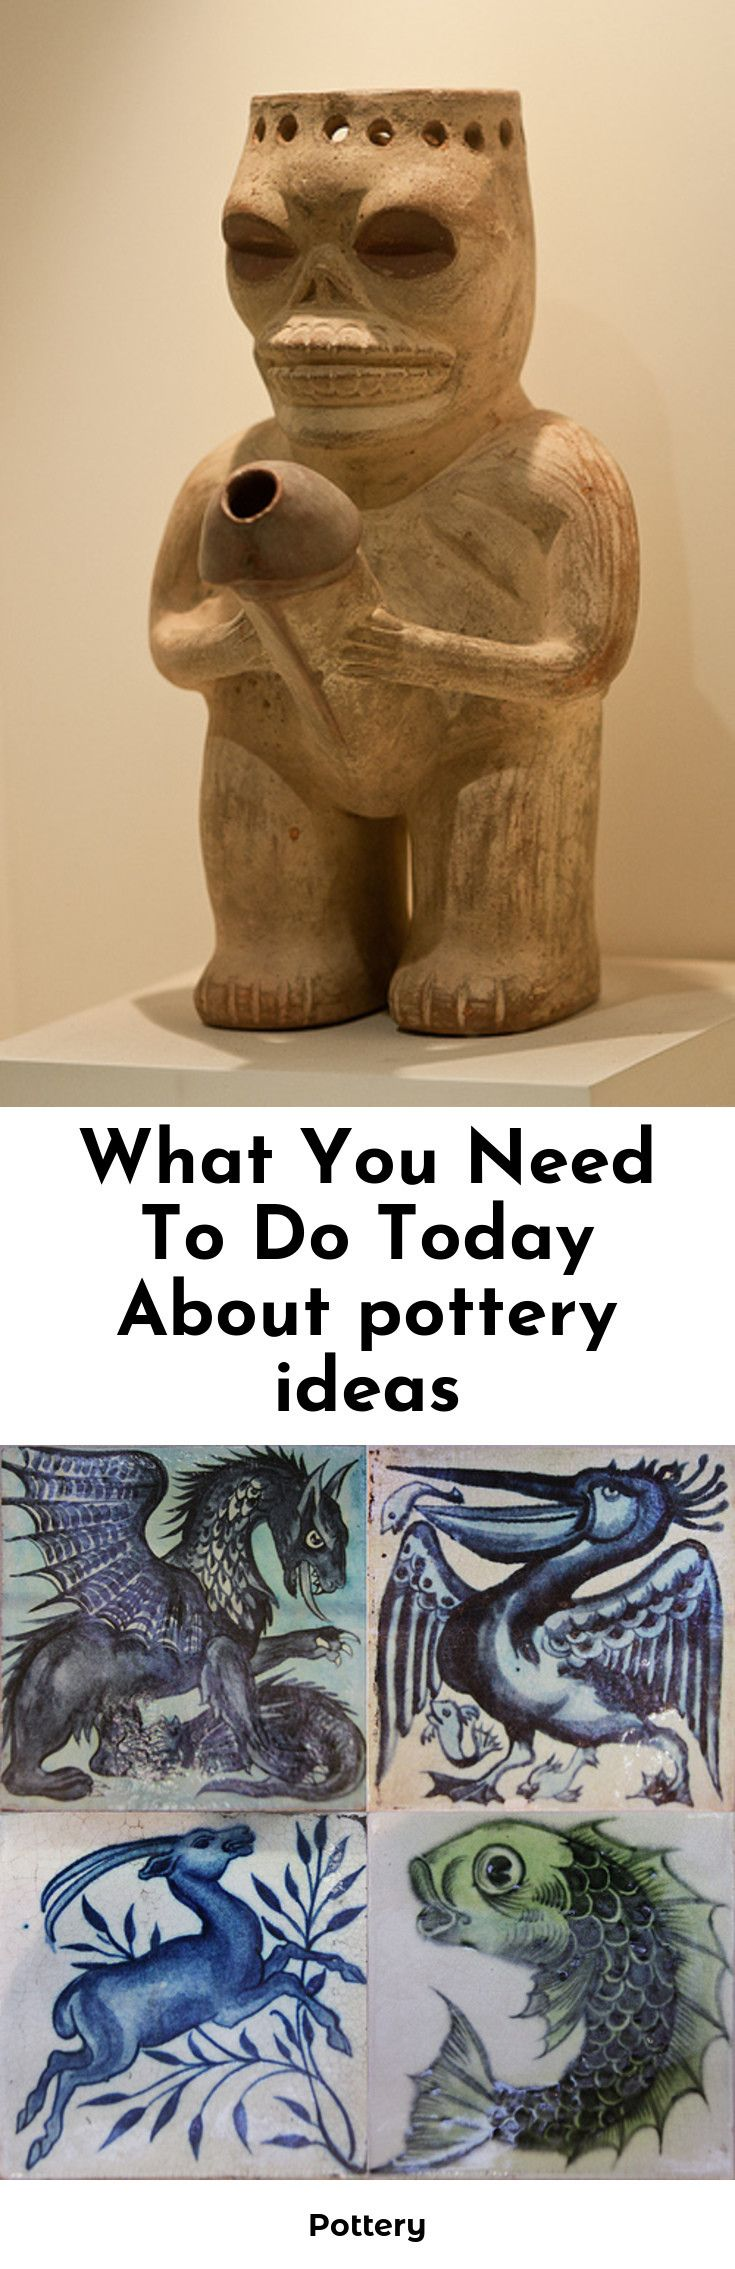 Click the link to read more about pottery wheel kits for